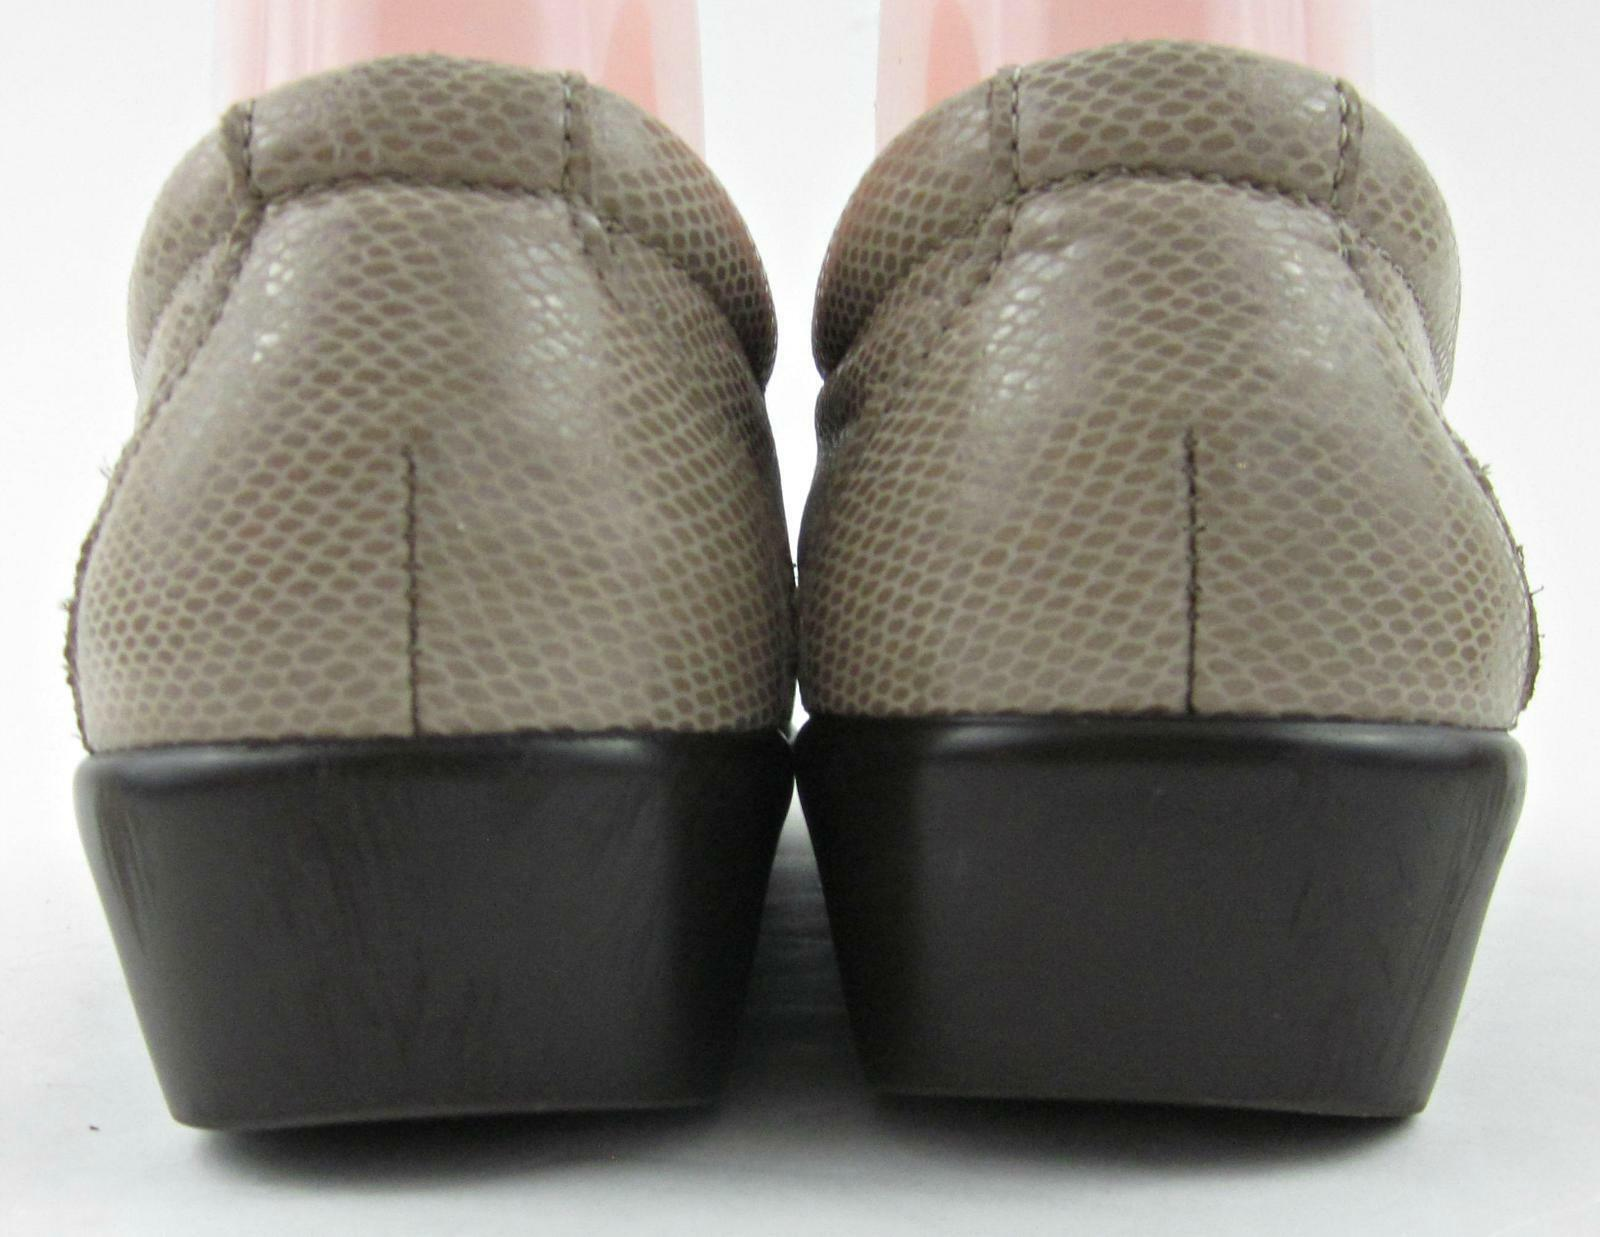 SAS 'Dream' Slip 6.5WW On Tripad Comfort Schuhes Mushroom Snake 6.5WW Slip Extra Wide 04b4f6